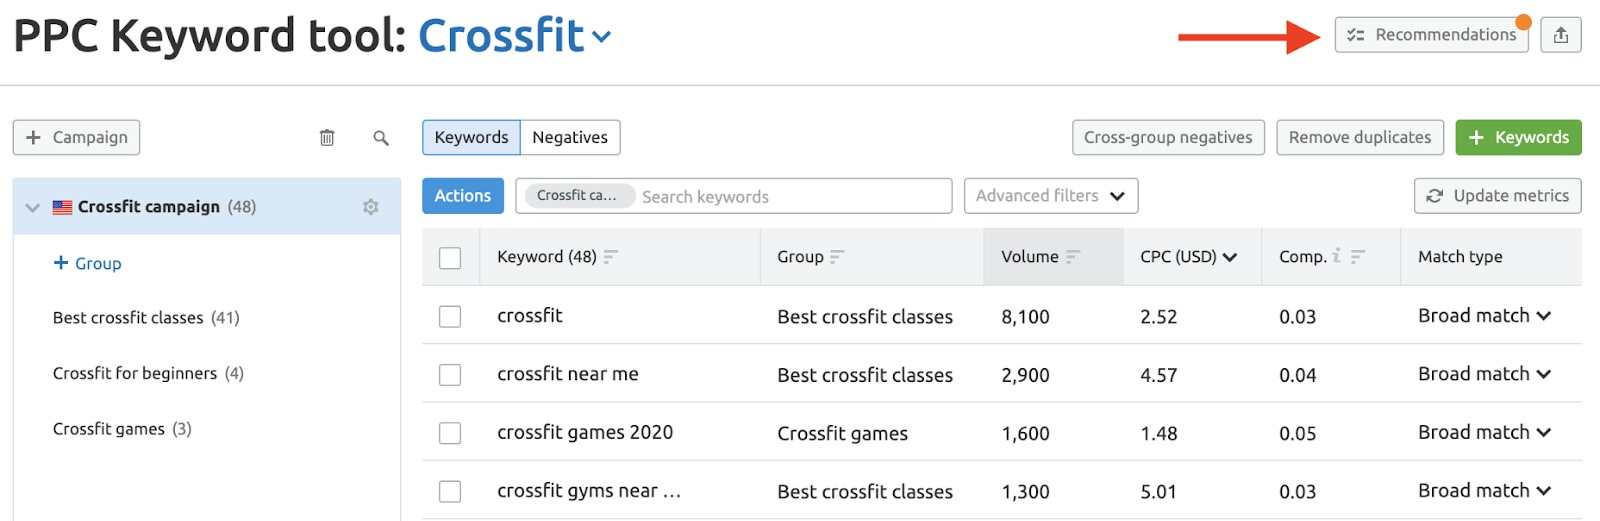 PPC Keyword Tool Recommendations image 1